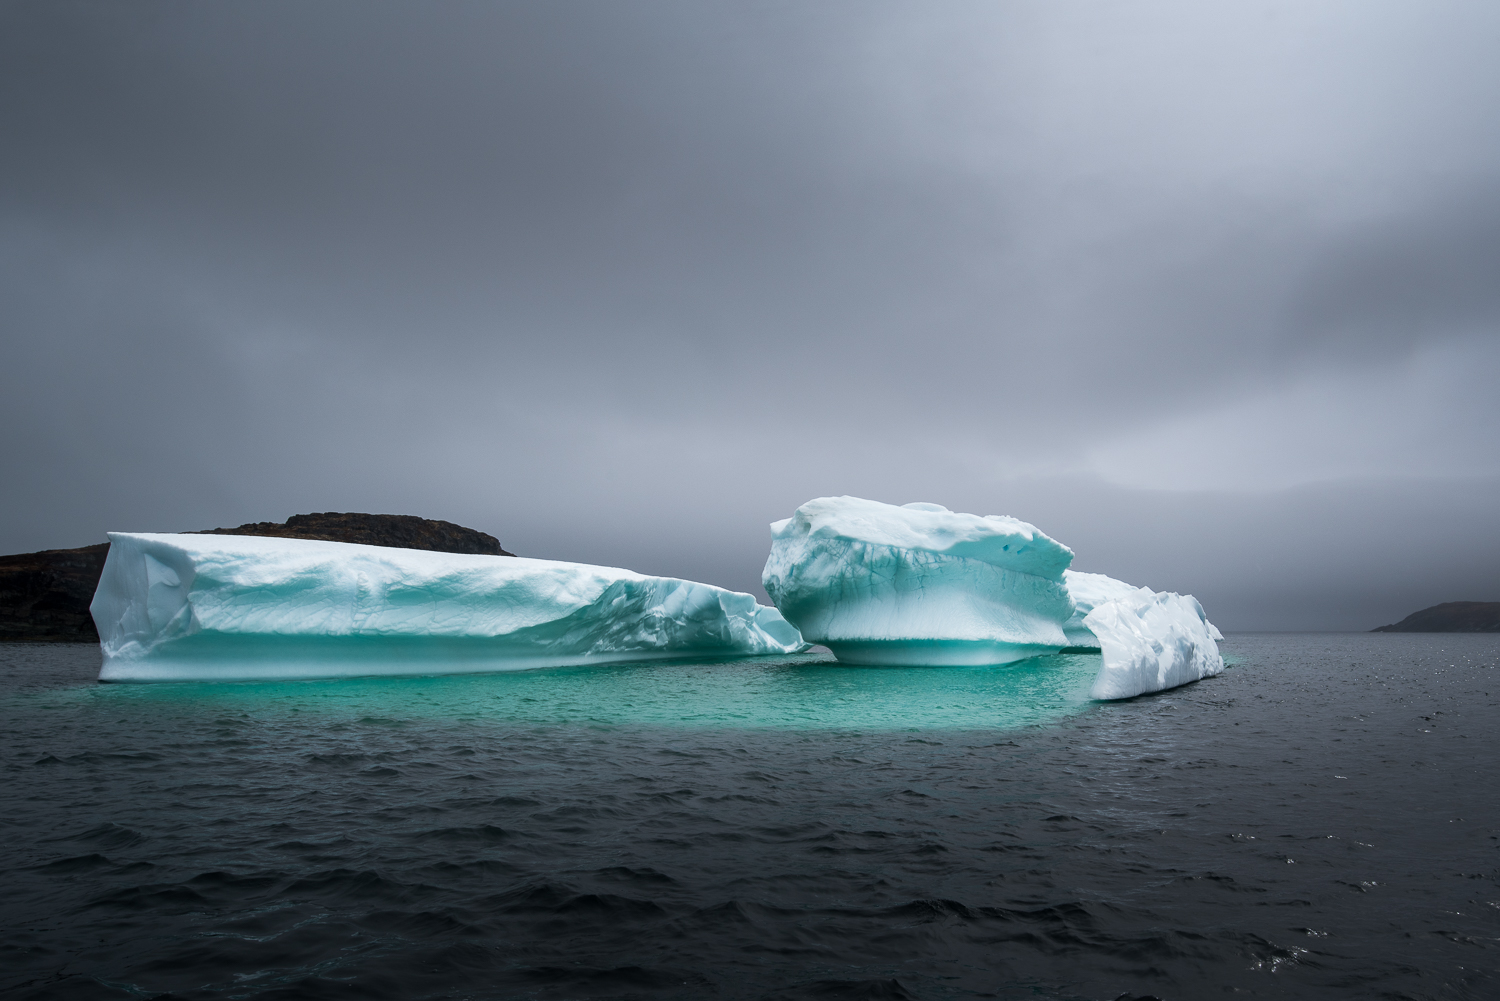 Icebergs look beautiful in overcast weather when the blues and greens really come through.